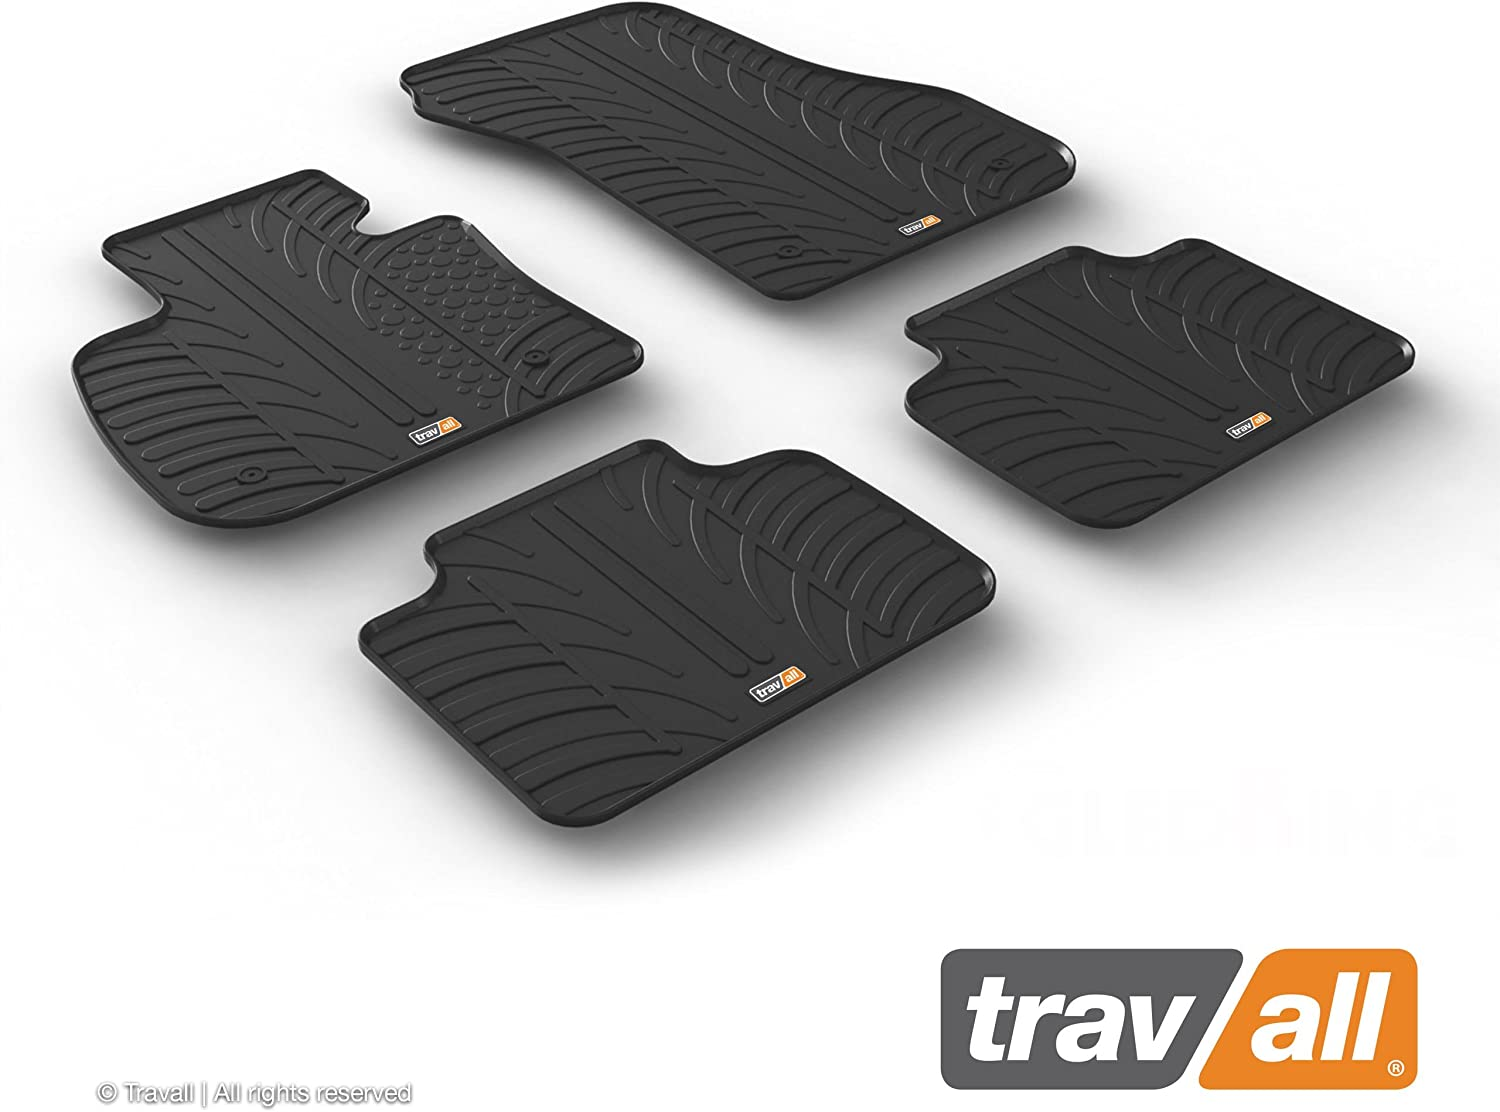 Travall Mats Rubber Floor Mats Accessory Trm1278 To Measure All Weather Floor Mats Auto